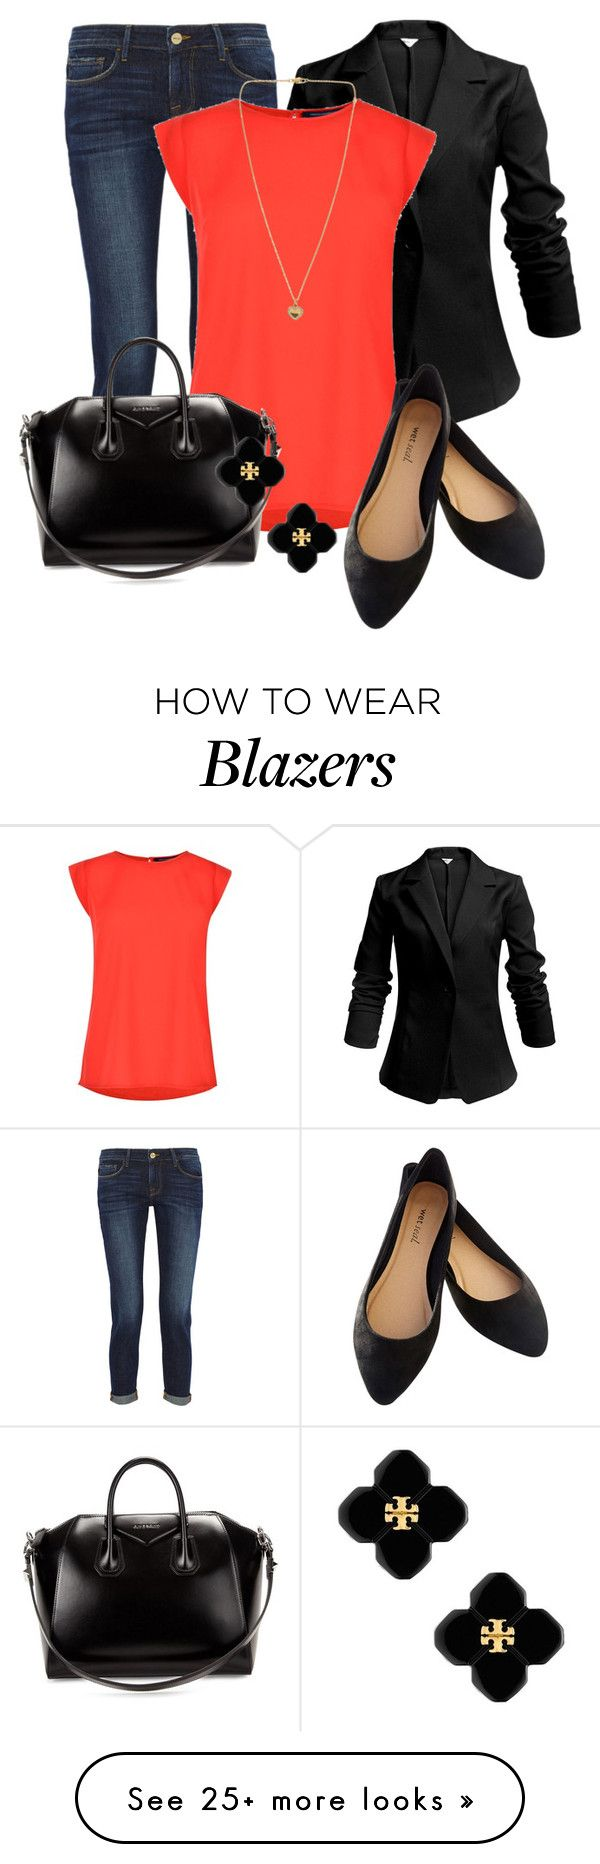 """Professional Wardrobe for All Ages Outfit: 54"" by vanessa-bohlmann on Polyvore featuring Frame Denim, French Connection, Wet Seal, Givenchy, Tory Burch and Michael Kors"